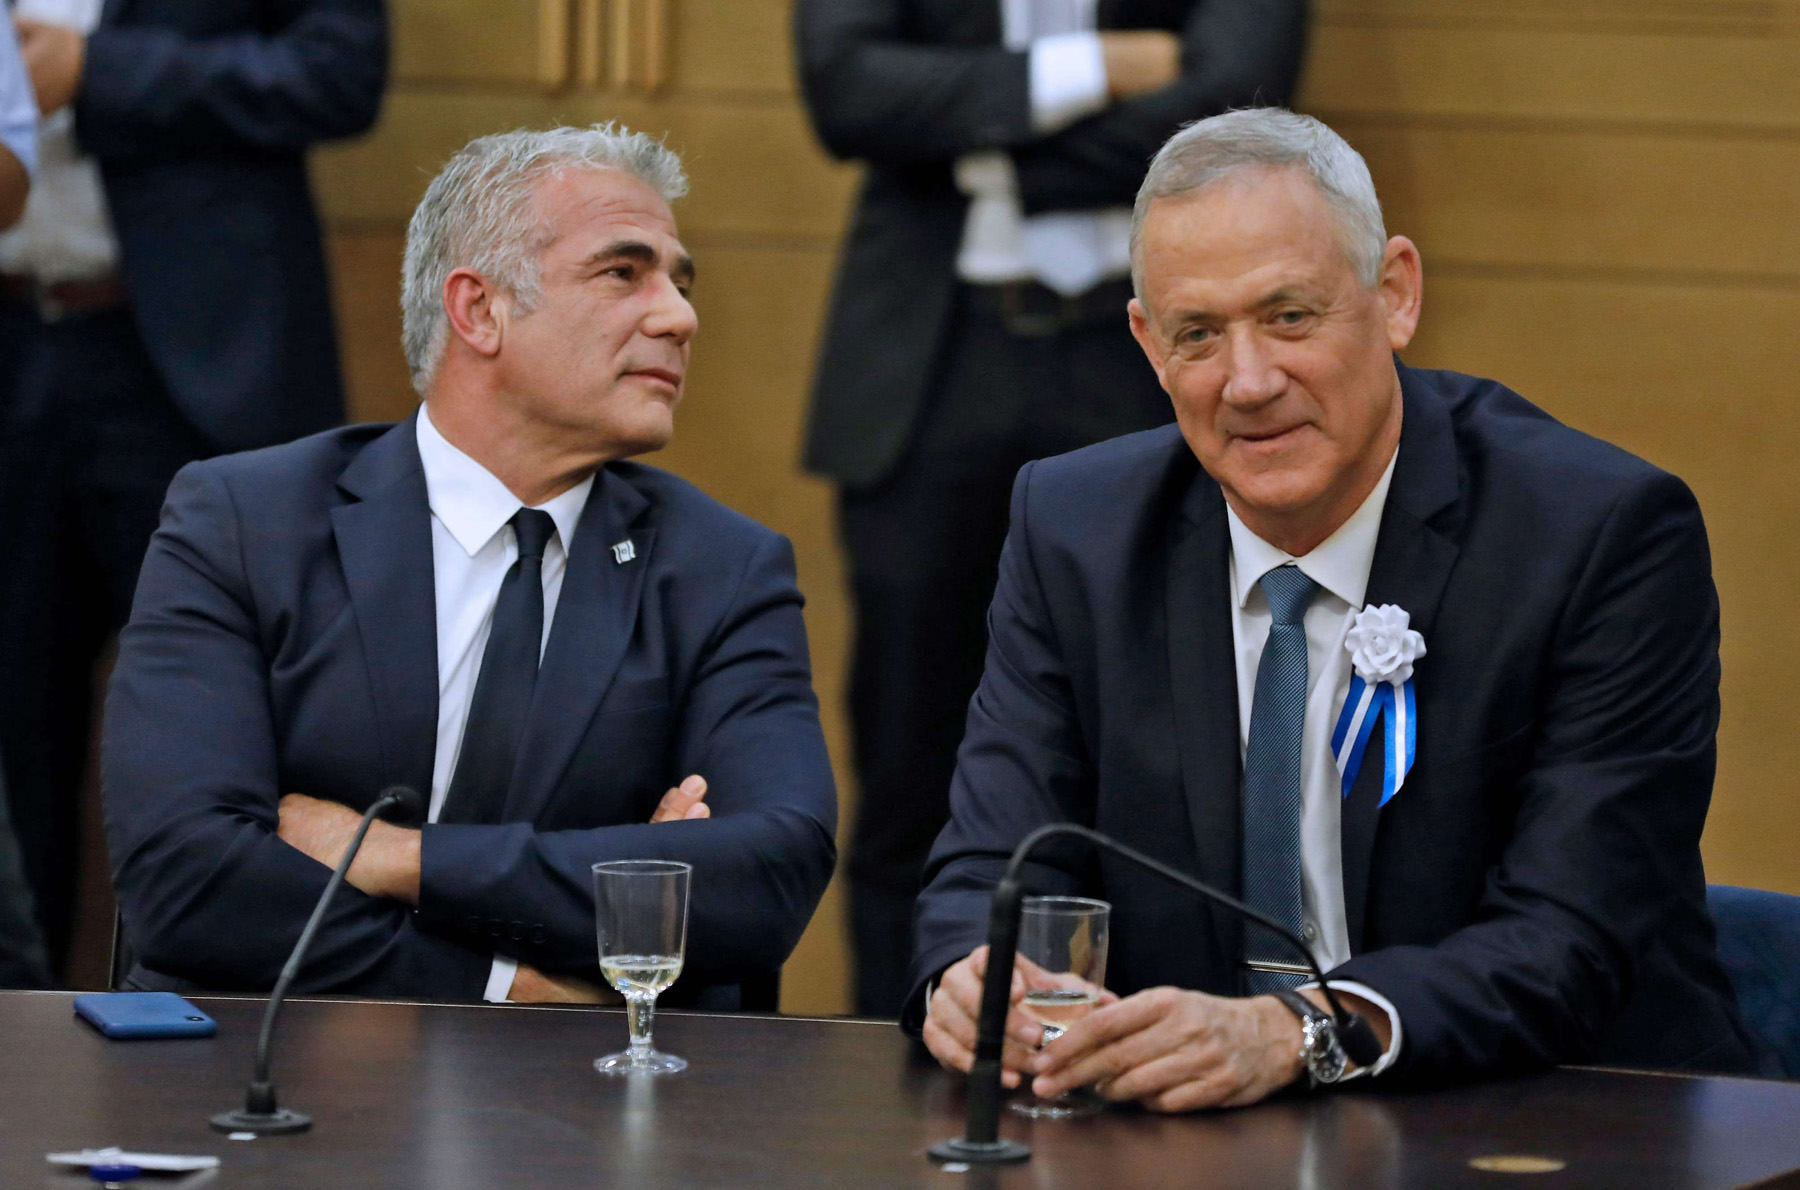 Members of Knesset Yair Lapid (L) of Yesh Atid and Benny Gantz of the Israel Resilience party, both part of the Blue and White alliance, sit together during a meeting in Jerusalem, October 3. (AFP)